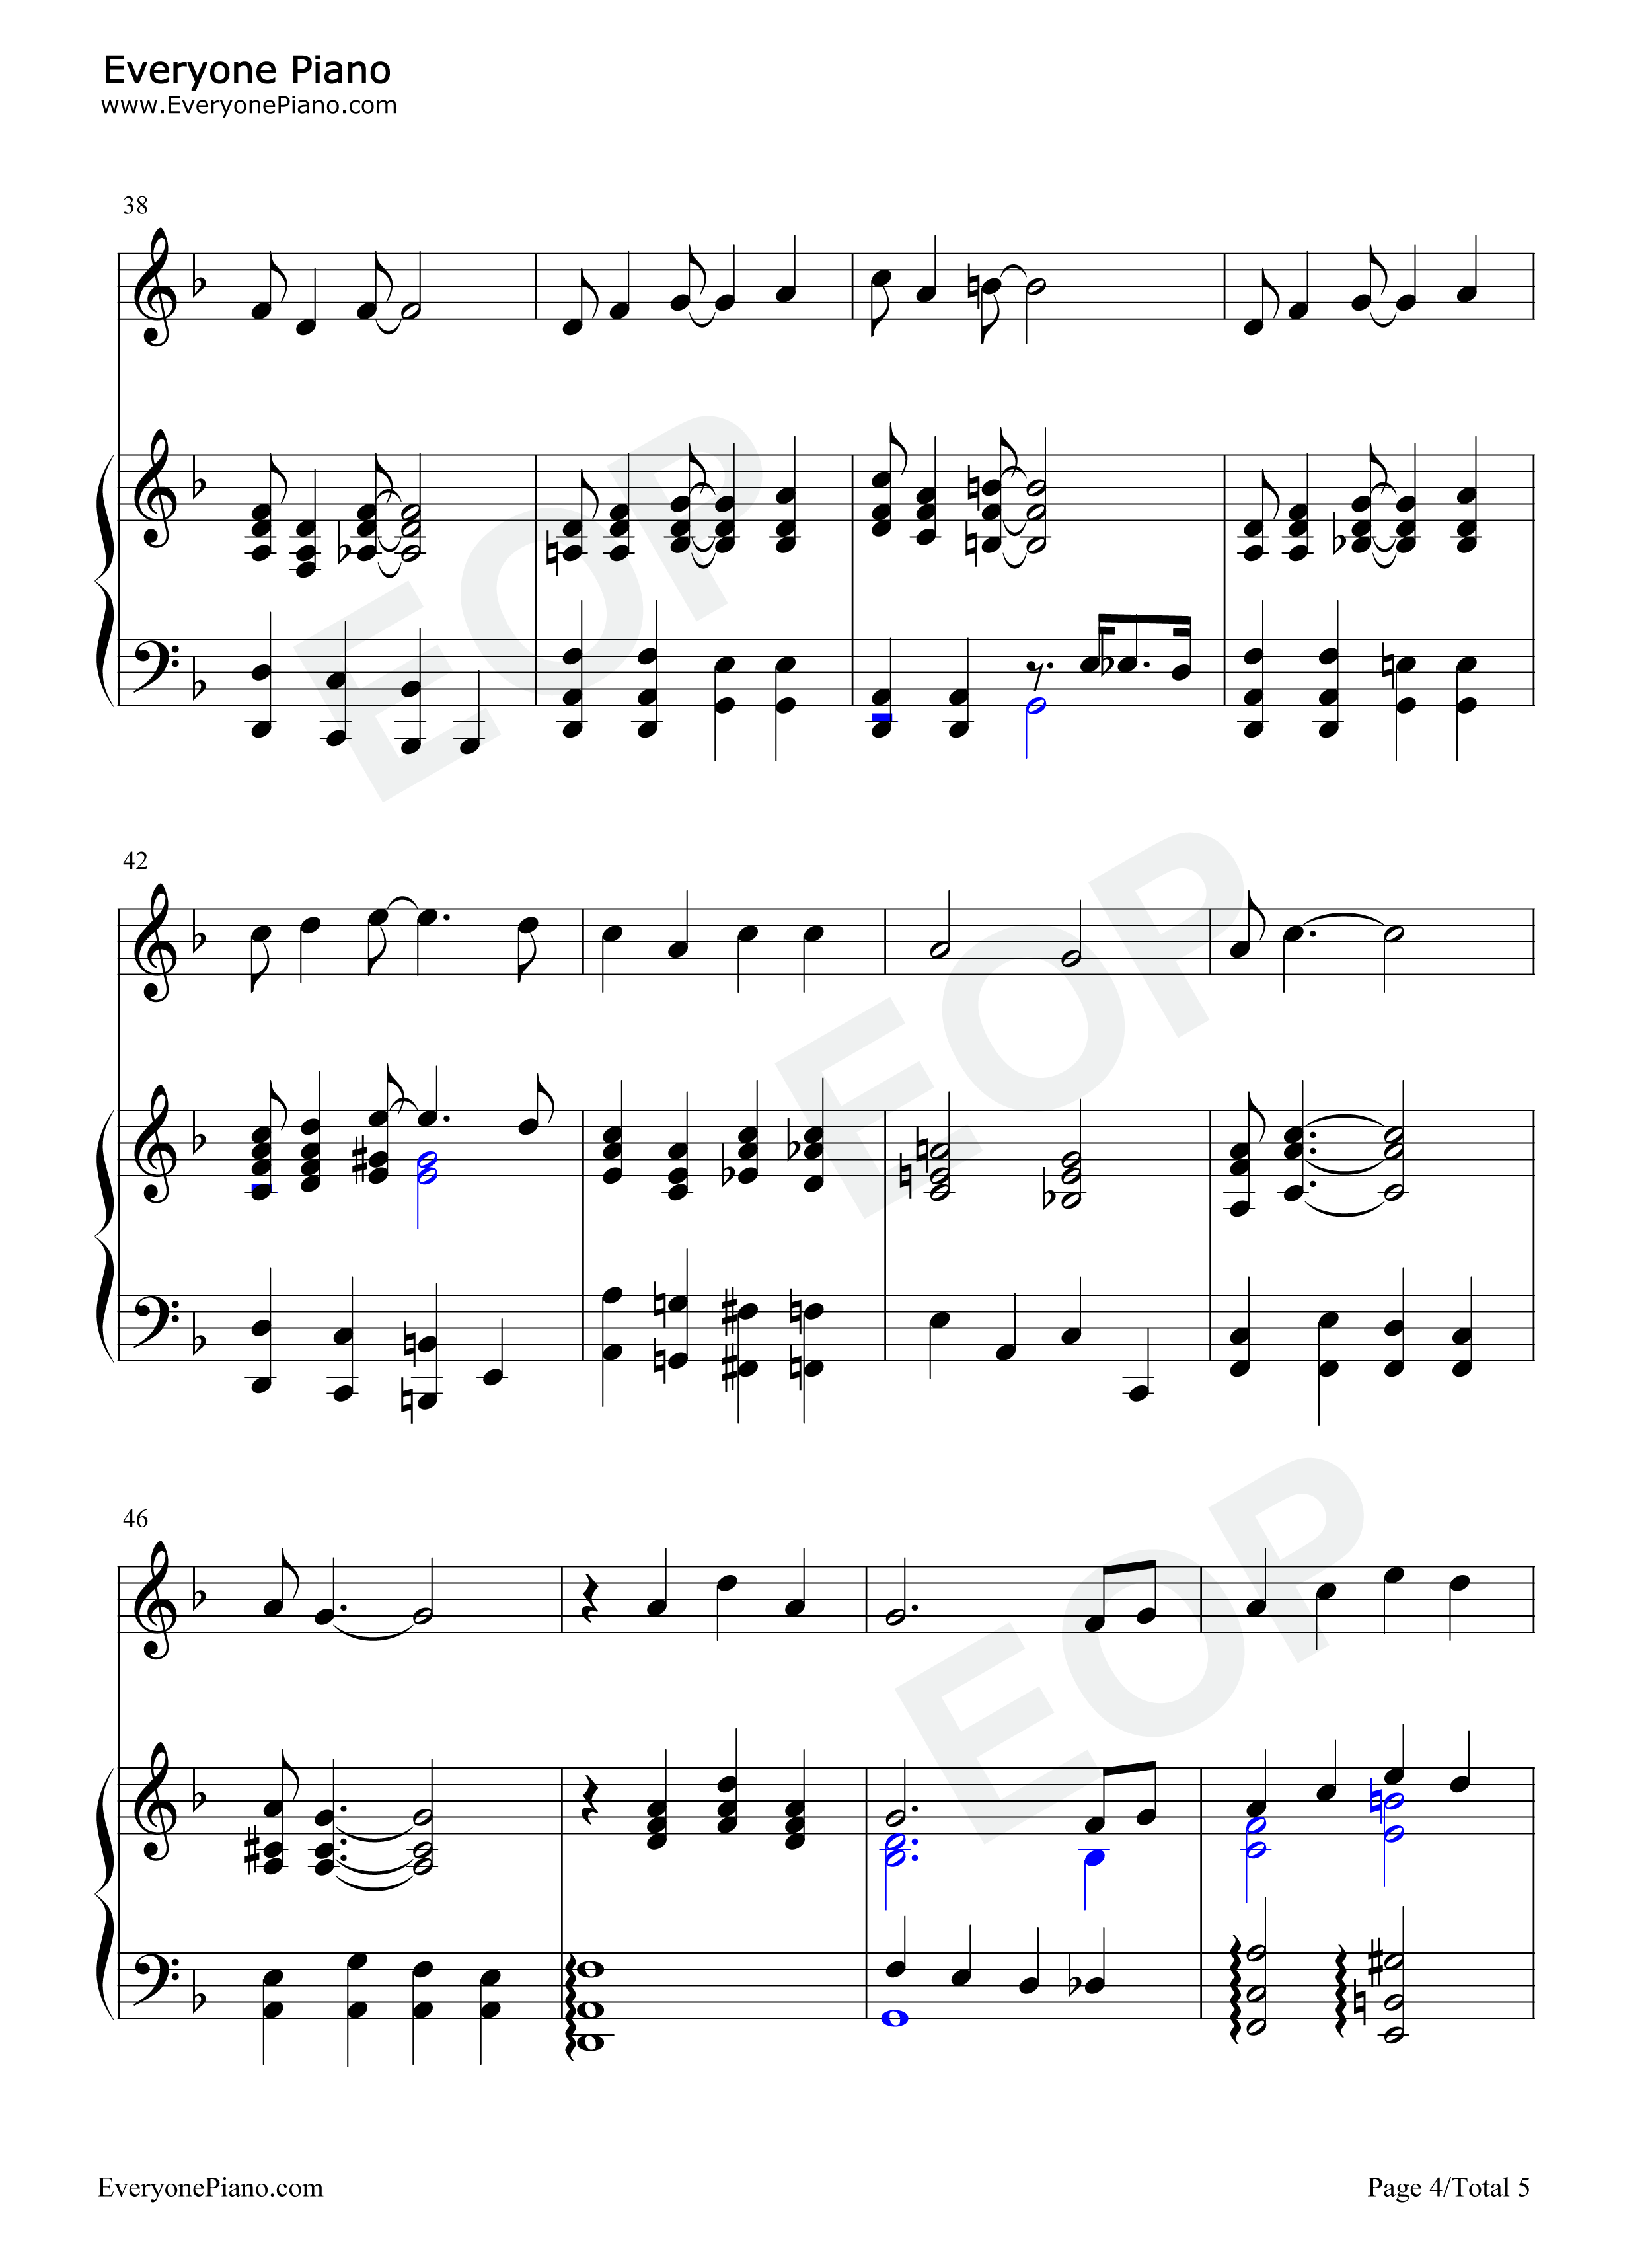 Georgia on my mind ray charles stave preview 4 free piano sheet listen now print sheet georgia on my mind ray charles stave preview 4 hexwebz Image collections